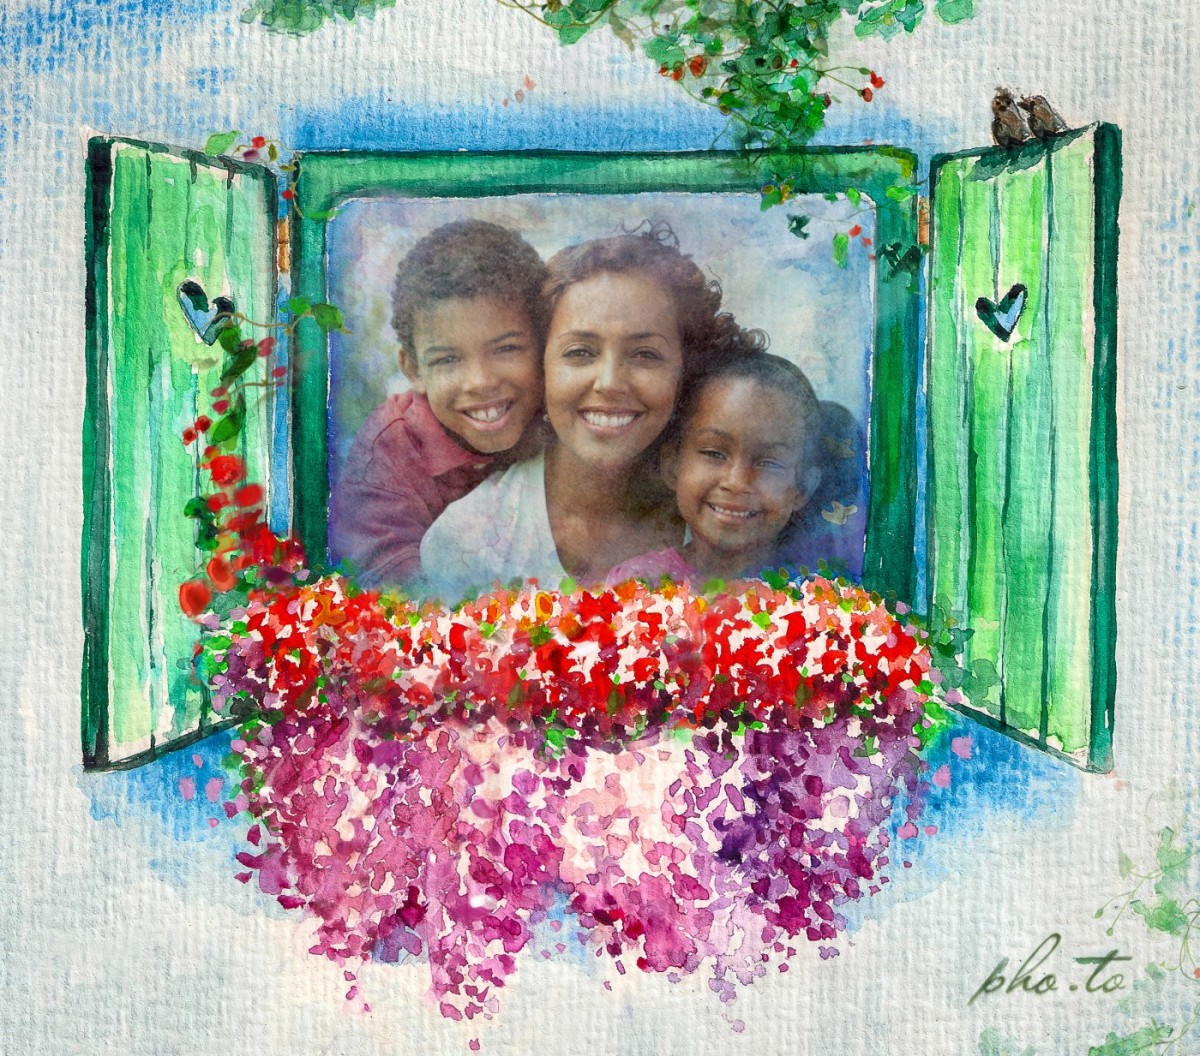 A family photo edited with watecolor frame emplate